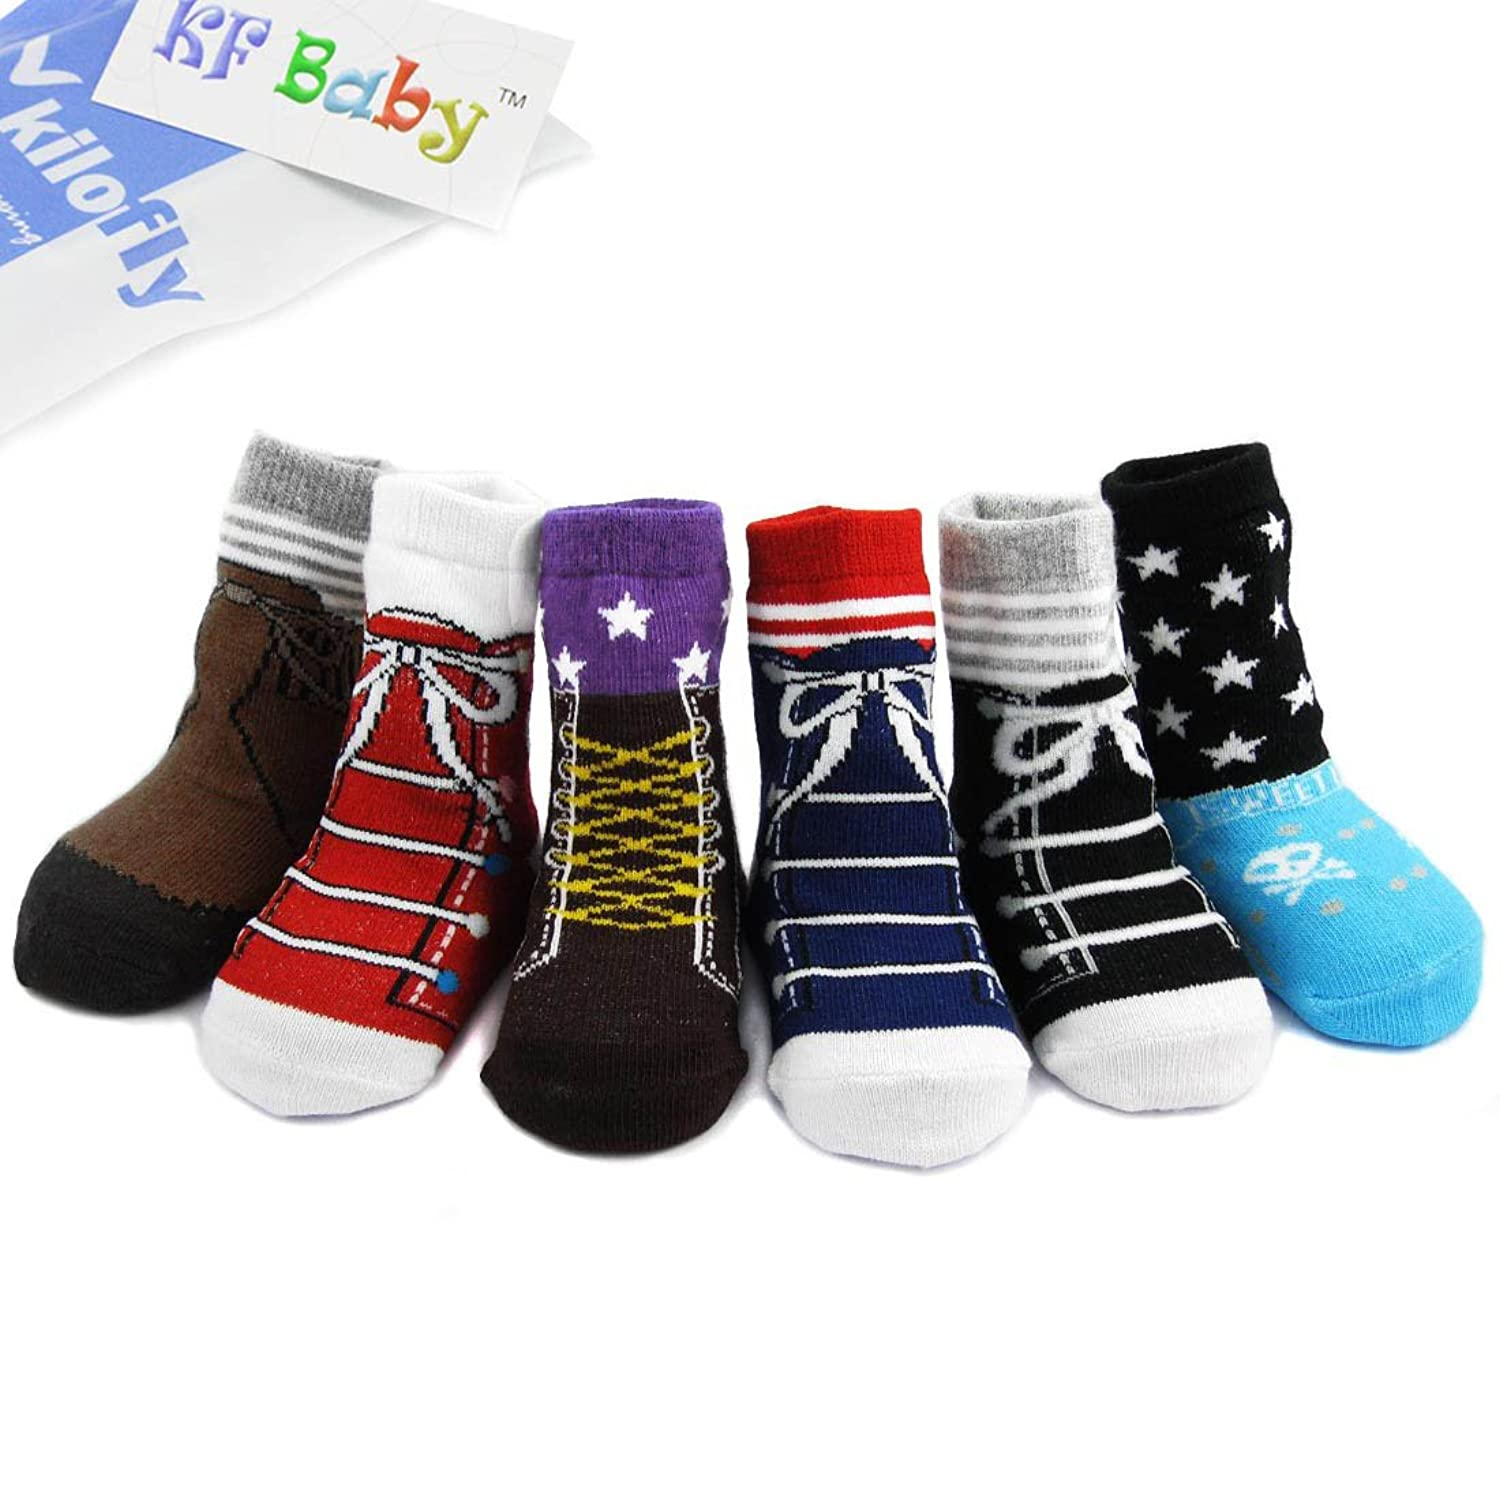 Amazon KF Baby Non Skid Baby Boy Shoe Socks 6 pairs for 12